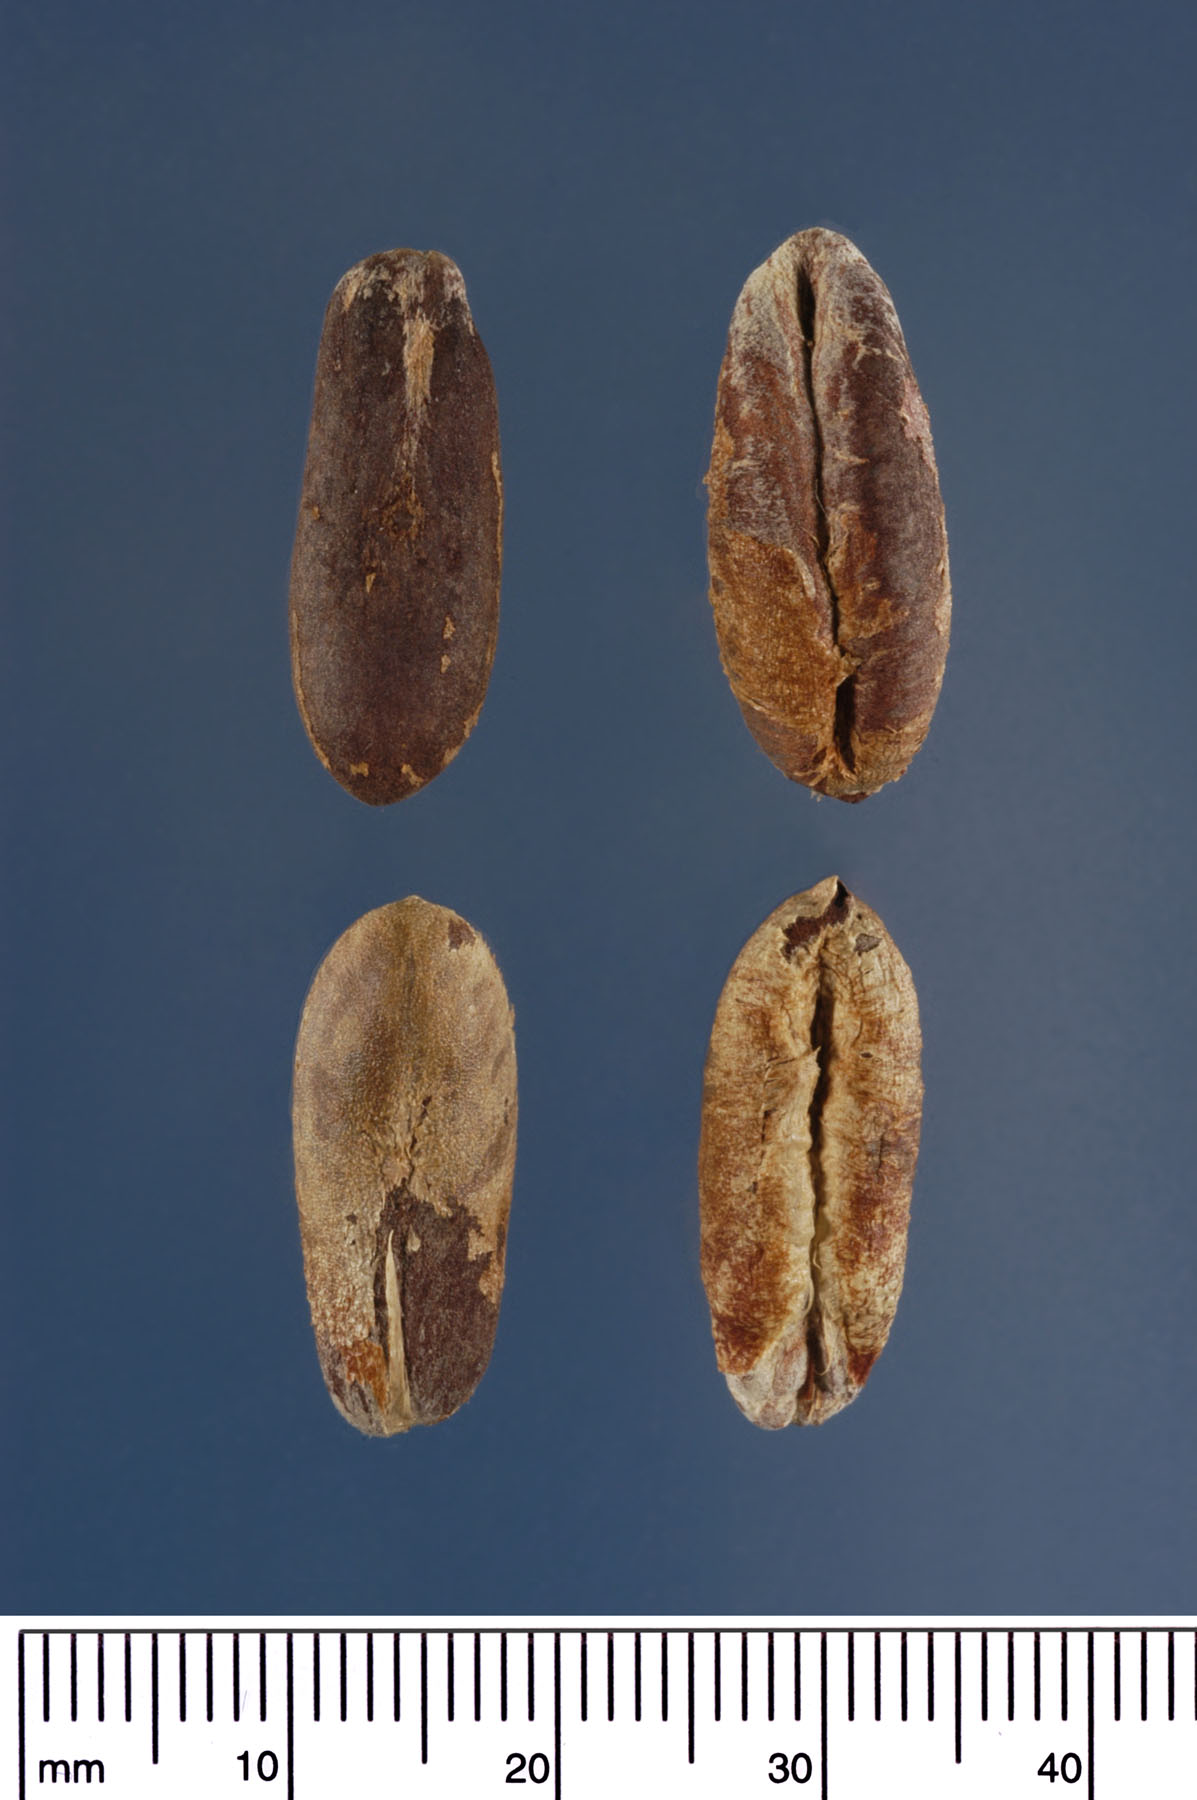 <p><em>Phoenix dactylifera </em>seeds. Photograph courtesy of Mariana P. Beckman, DPI</p>